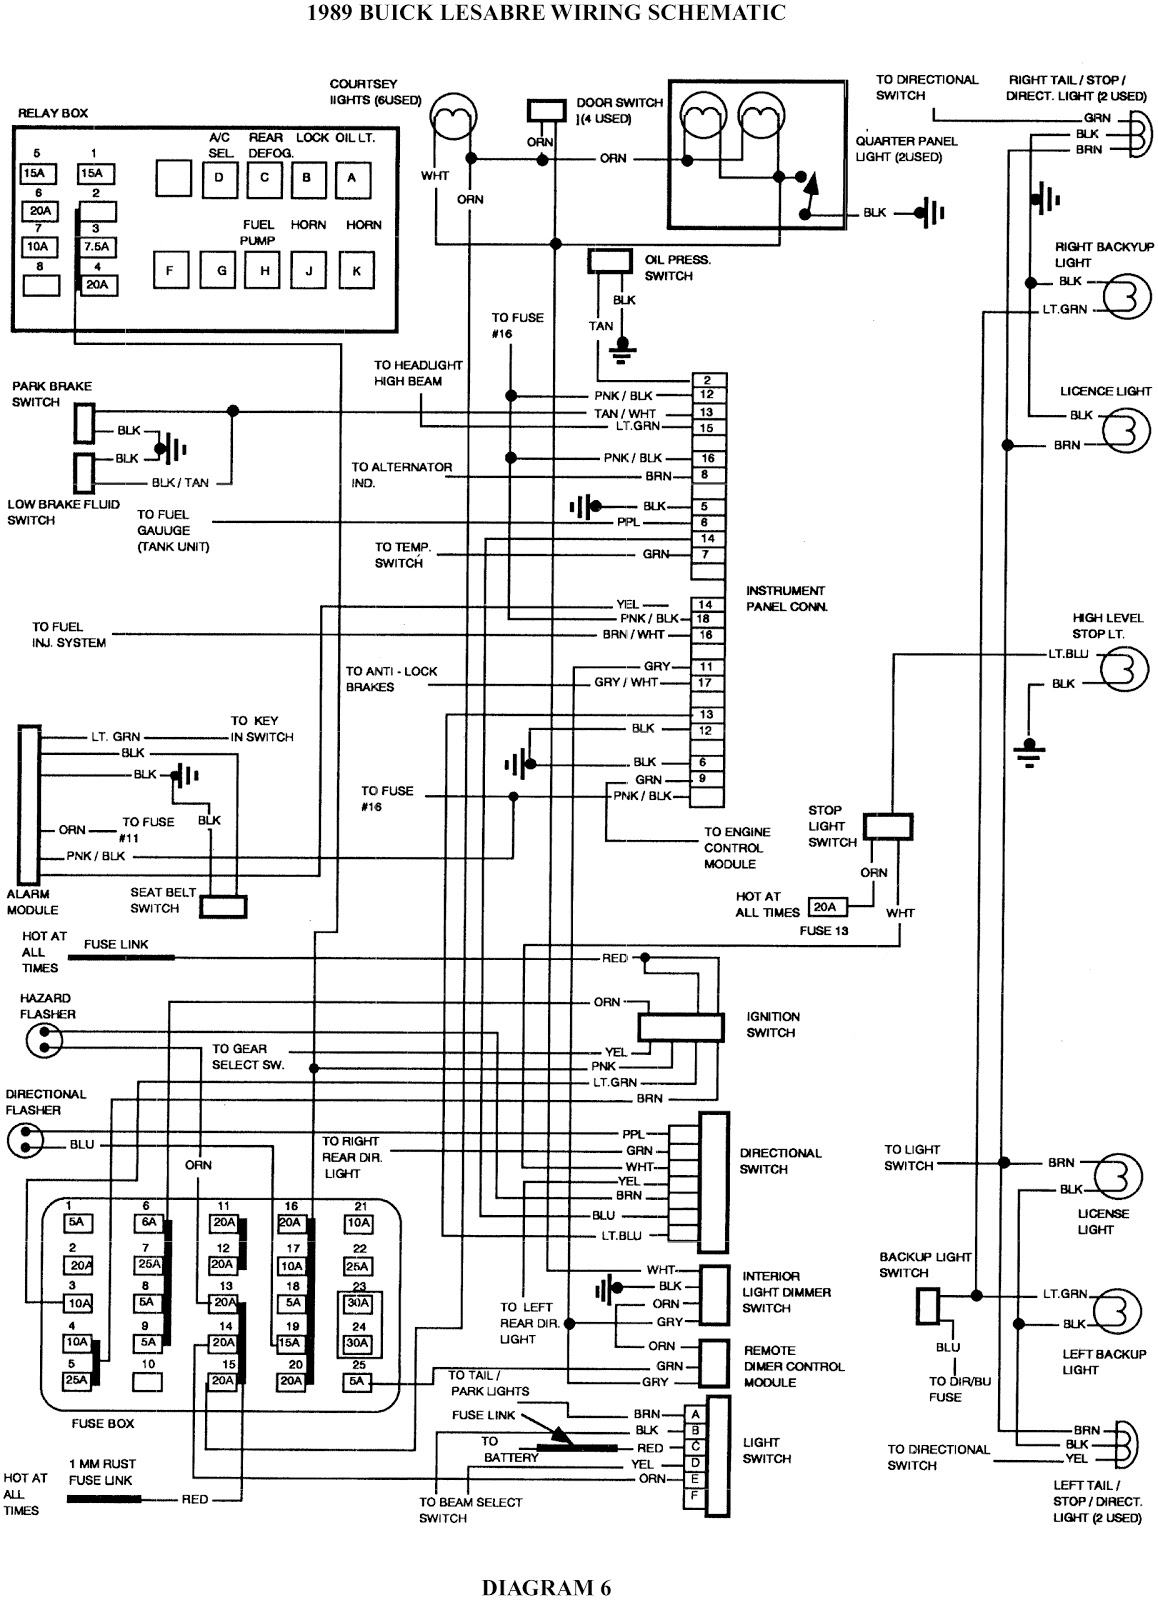 chevy turn signal switch wiring diagram additionally 2012 chevrolet